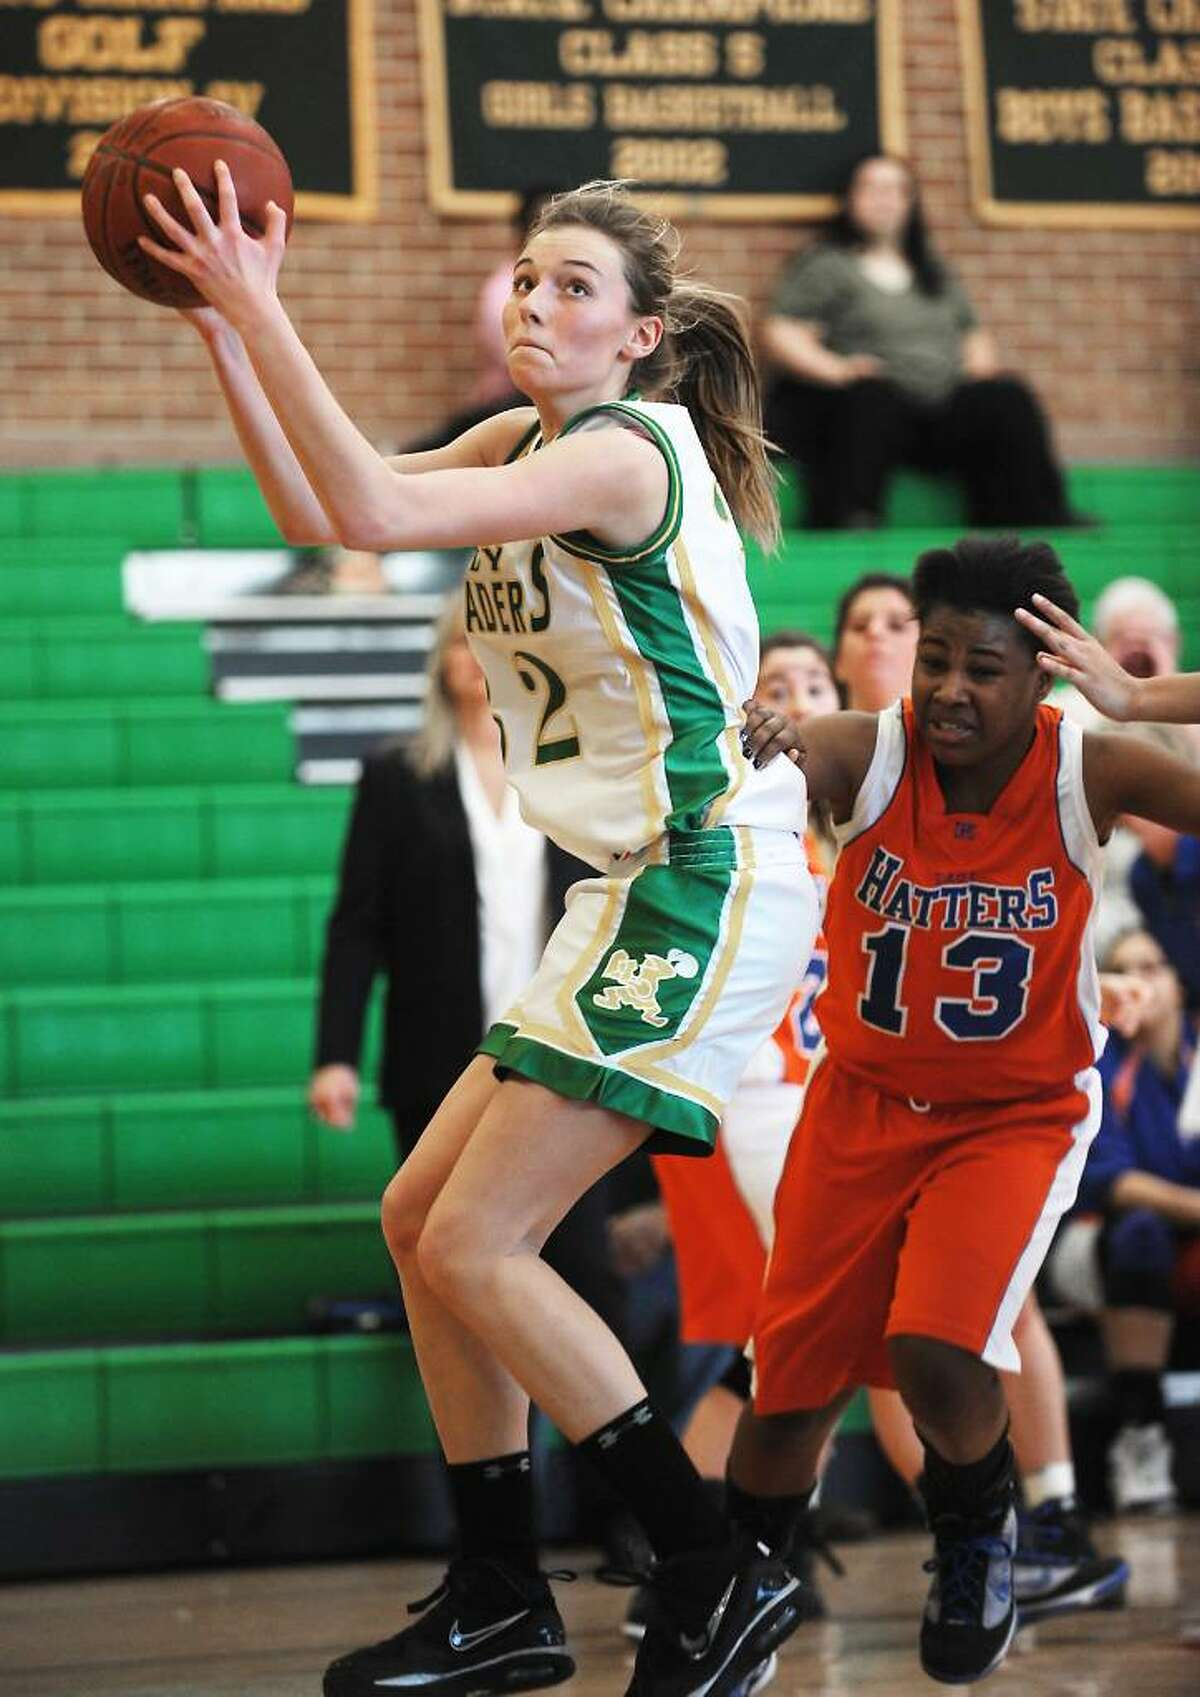 Trinity Catholic's Cayleigh Griffin goes in for a shot against Danbury's Jasmine Holmes in the quarterfinals of the FCIAC girls basketball championship in Stamford, Conn. on Saturday, Feb. 20, 2010.